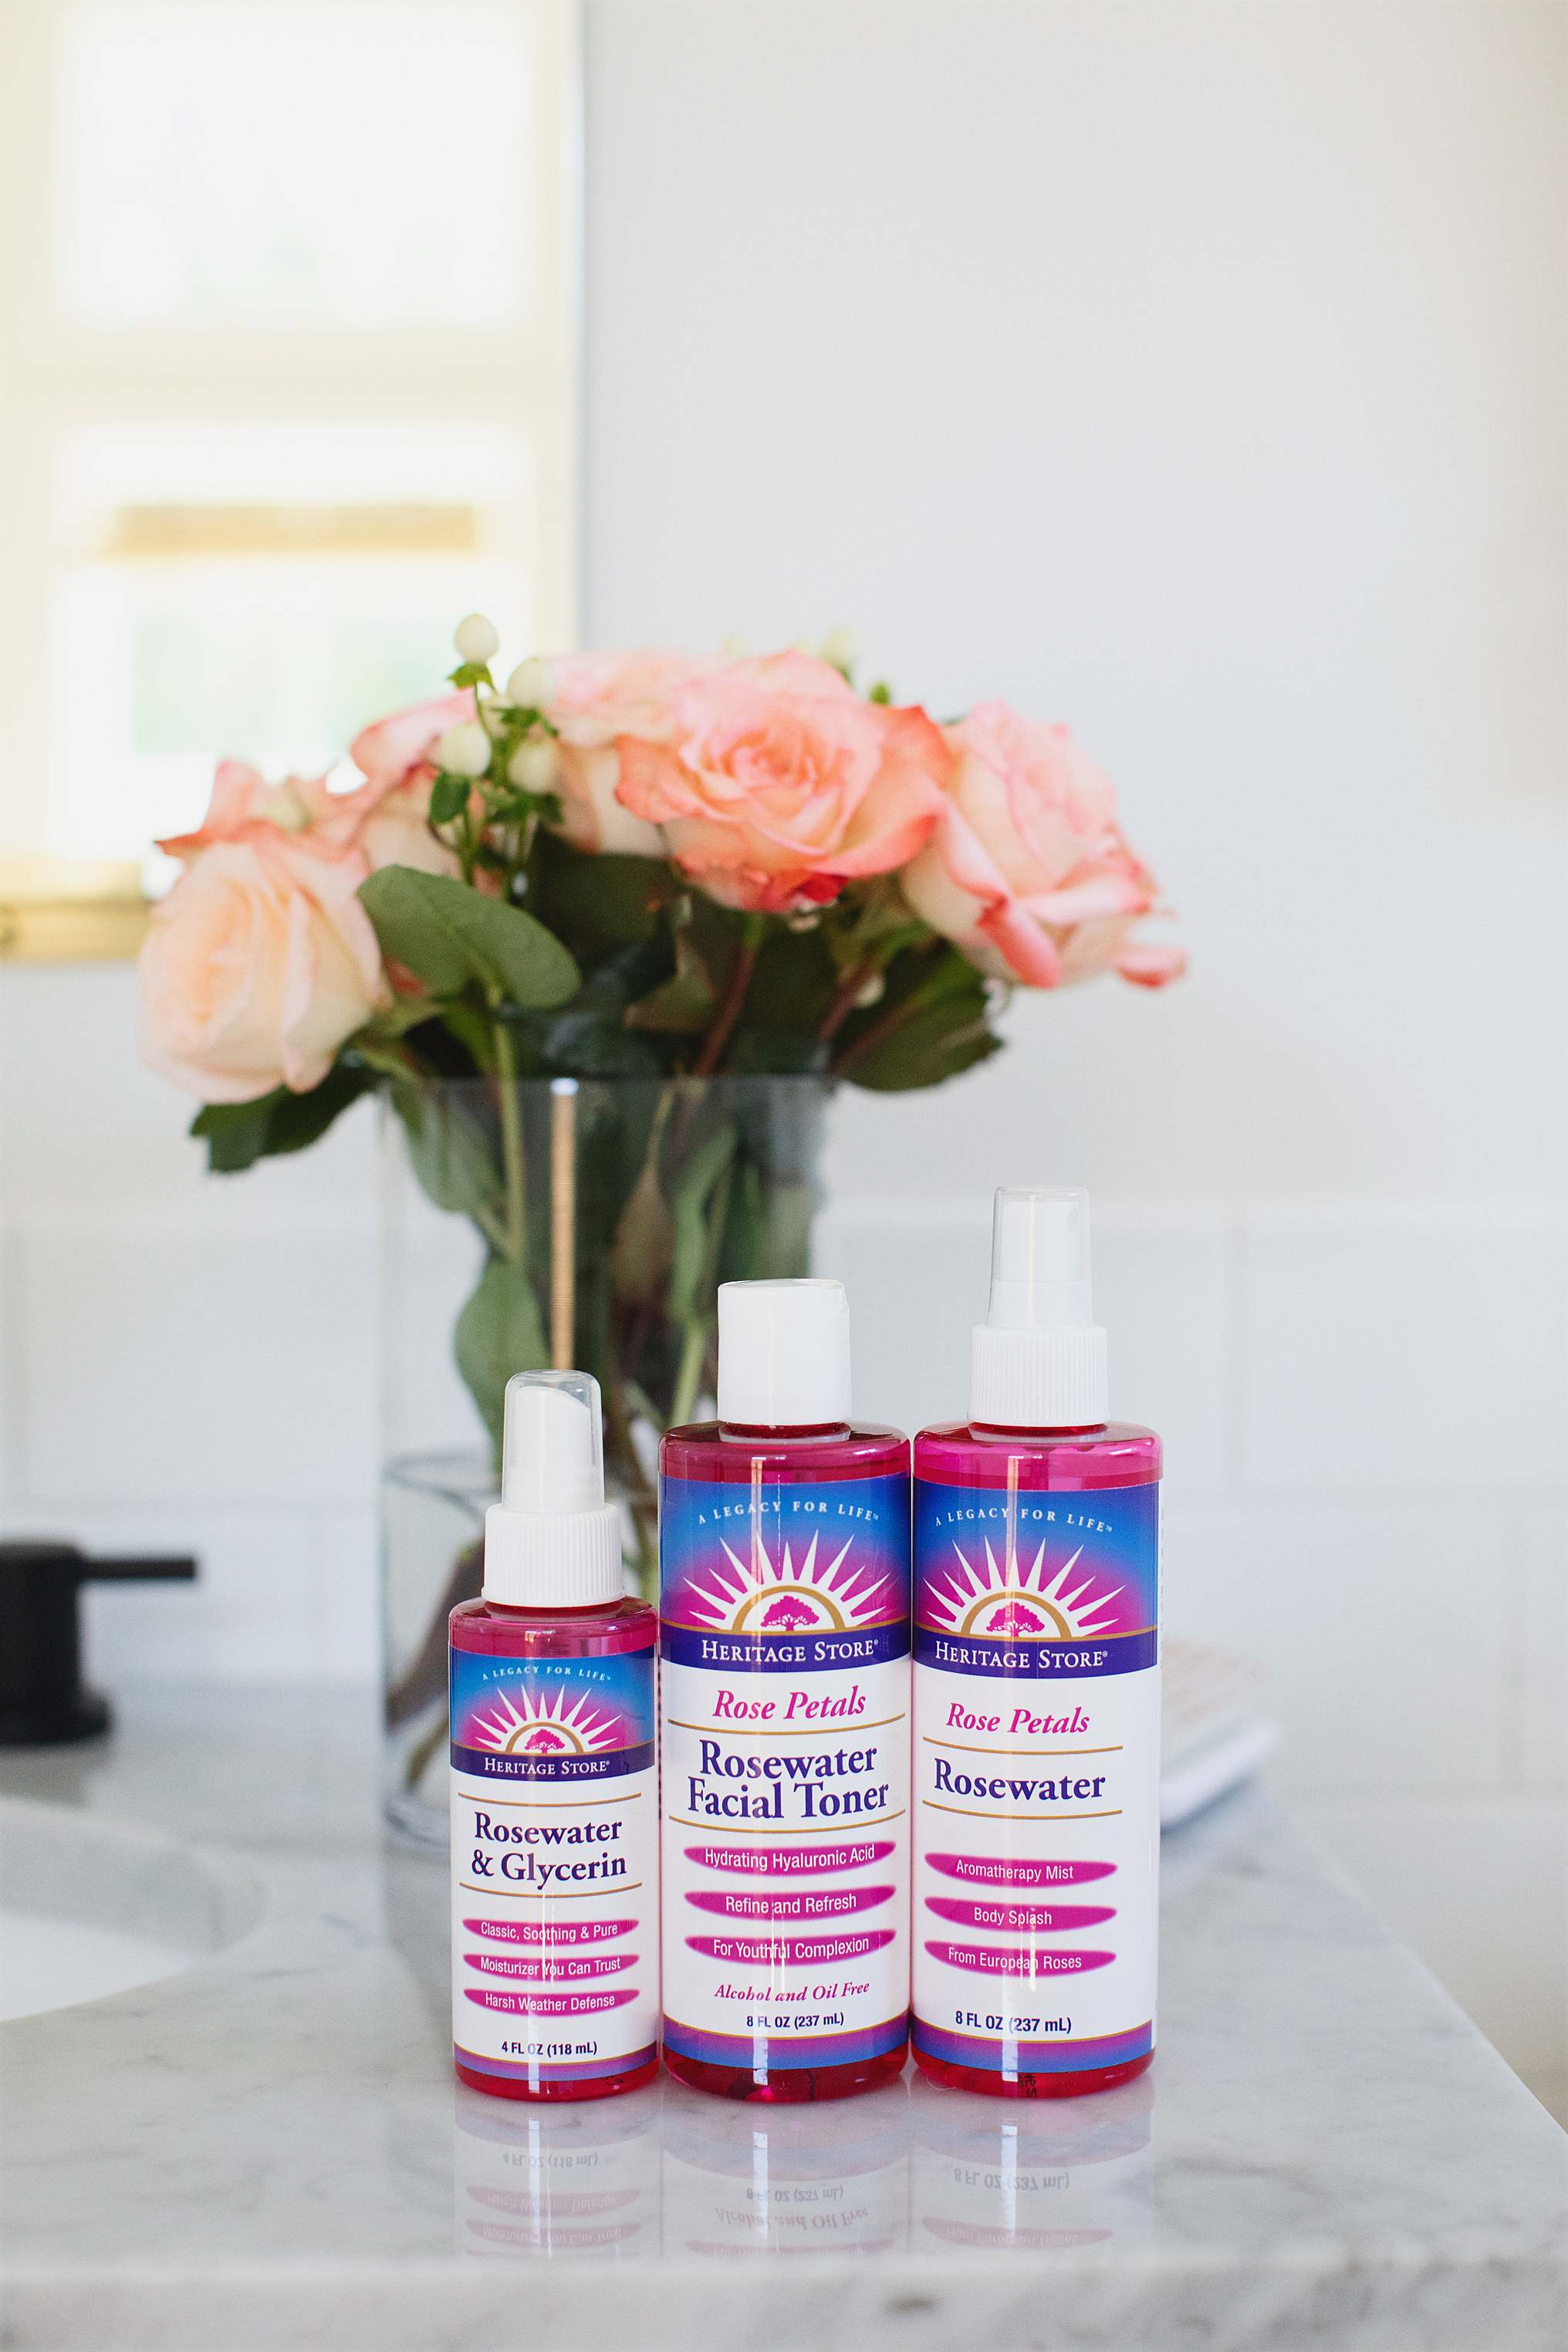 heritage store rosewater products